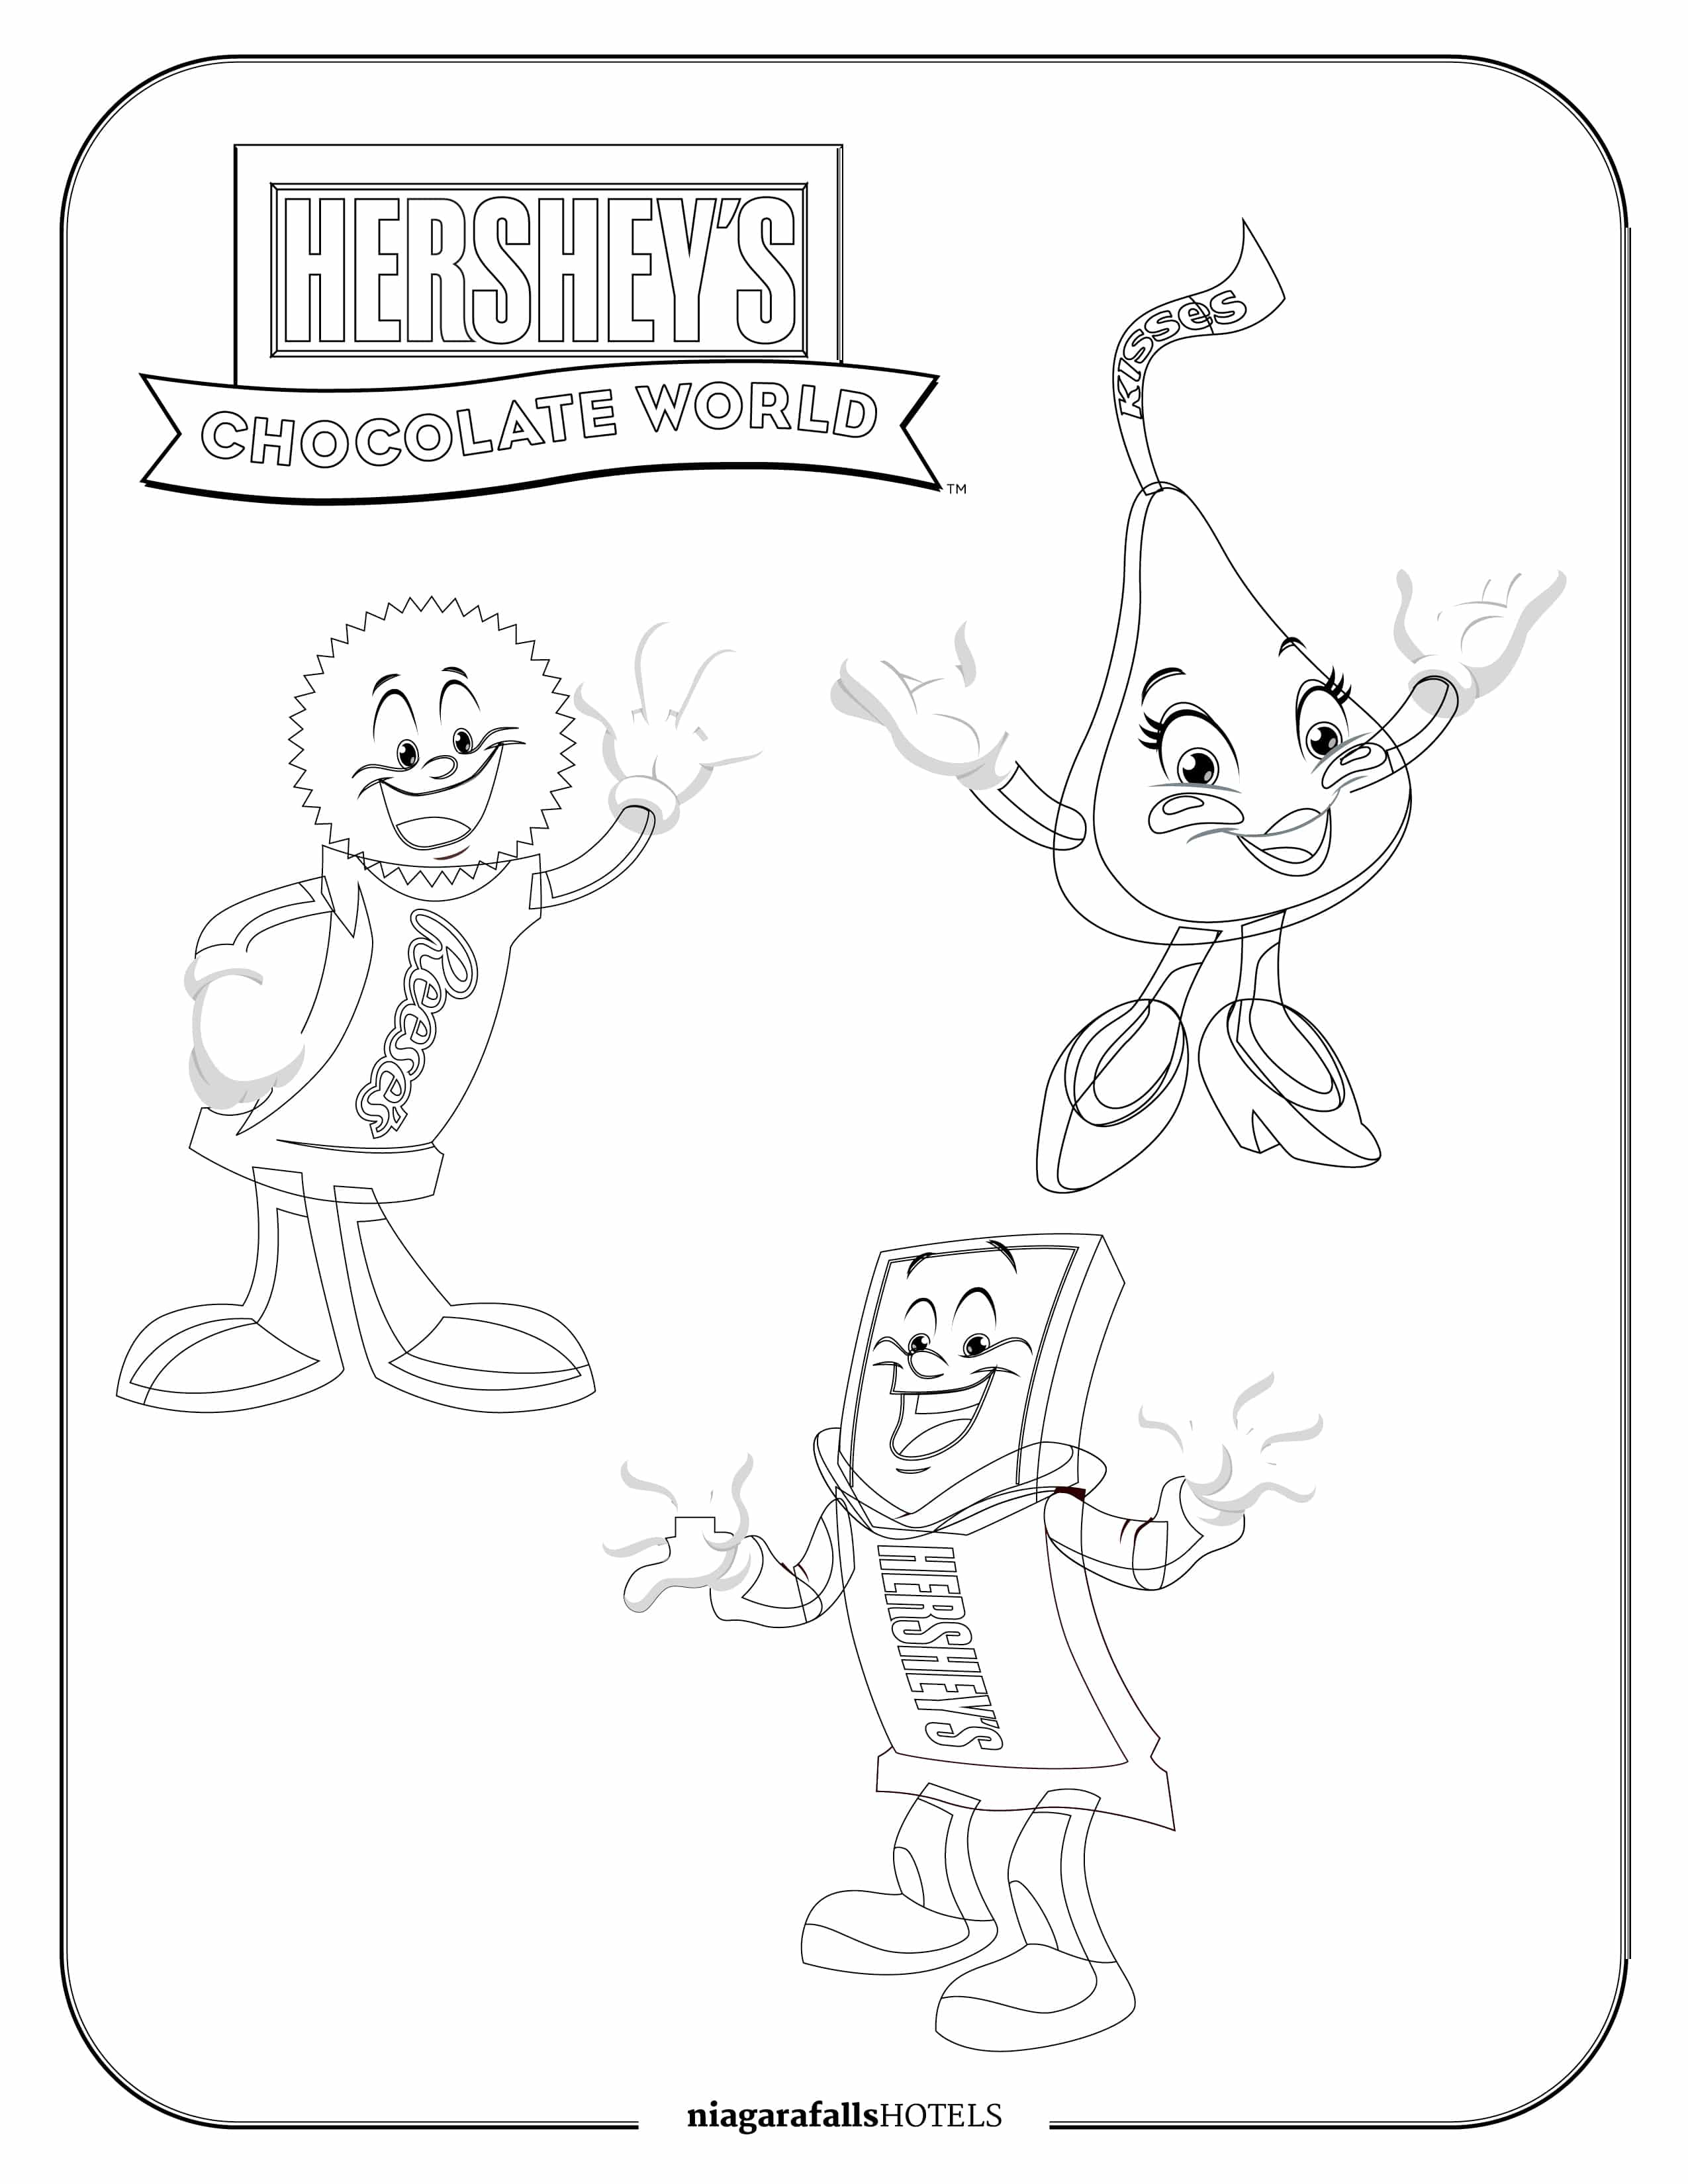 Hershey's Chocolate World Colouring Page